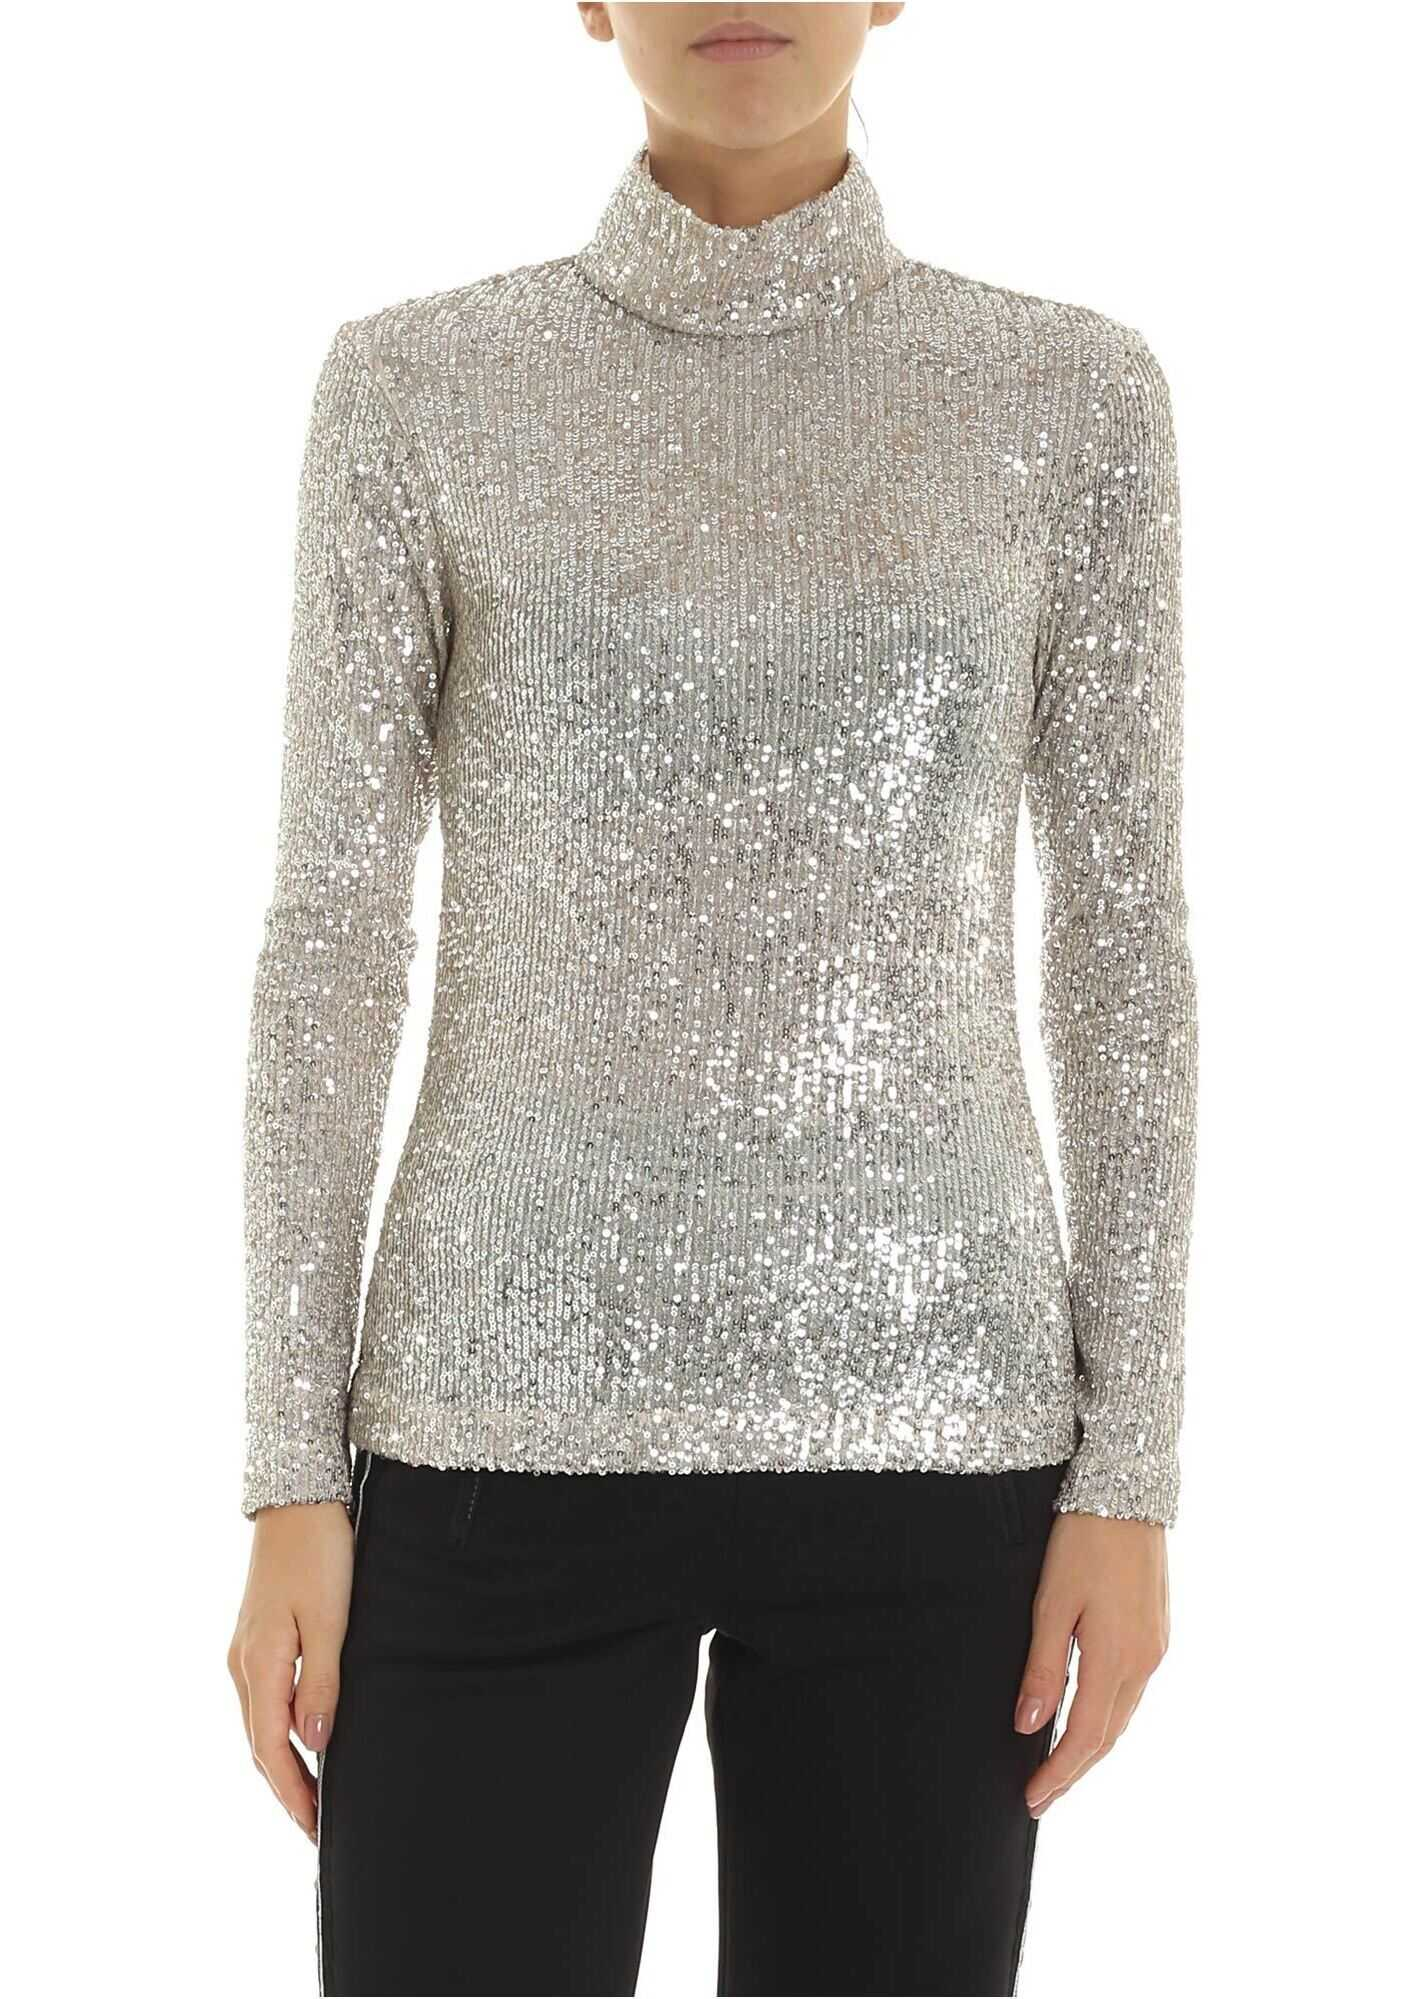 Turtleneck Sweater In Silver Sequins thumbnail